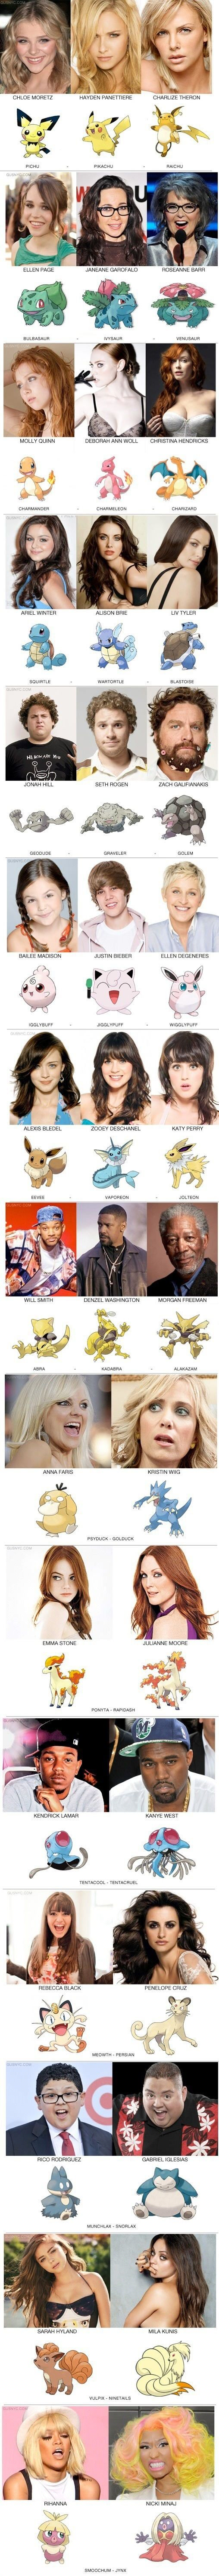 Celebrities and their corresponding Pokemon. This is so accurate it's hillarious